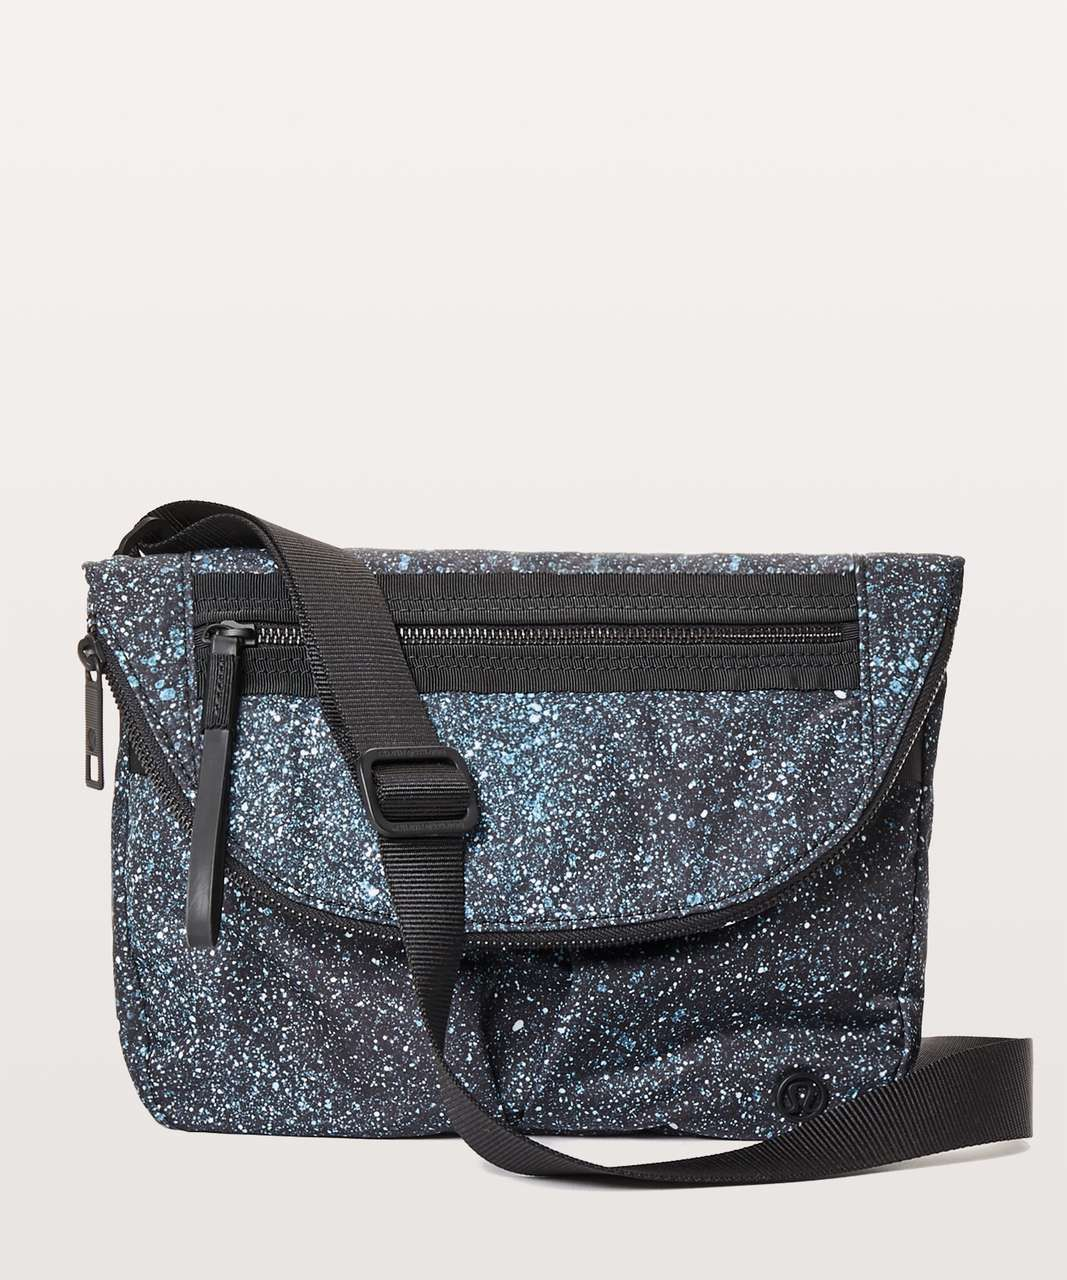 2507fa359c1 Color: Mineralize Multi/Black. When your Saturday is filled with errands, a  practice, and a coffee date, this little bag is your go-to.